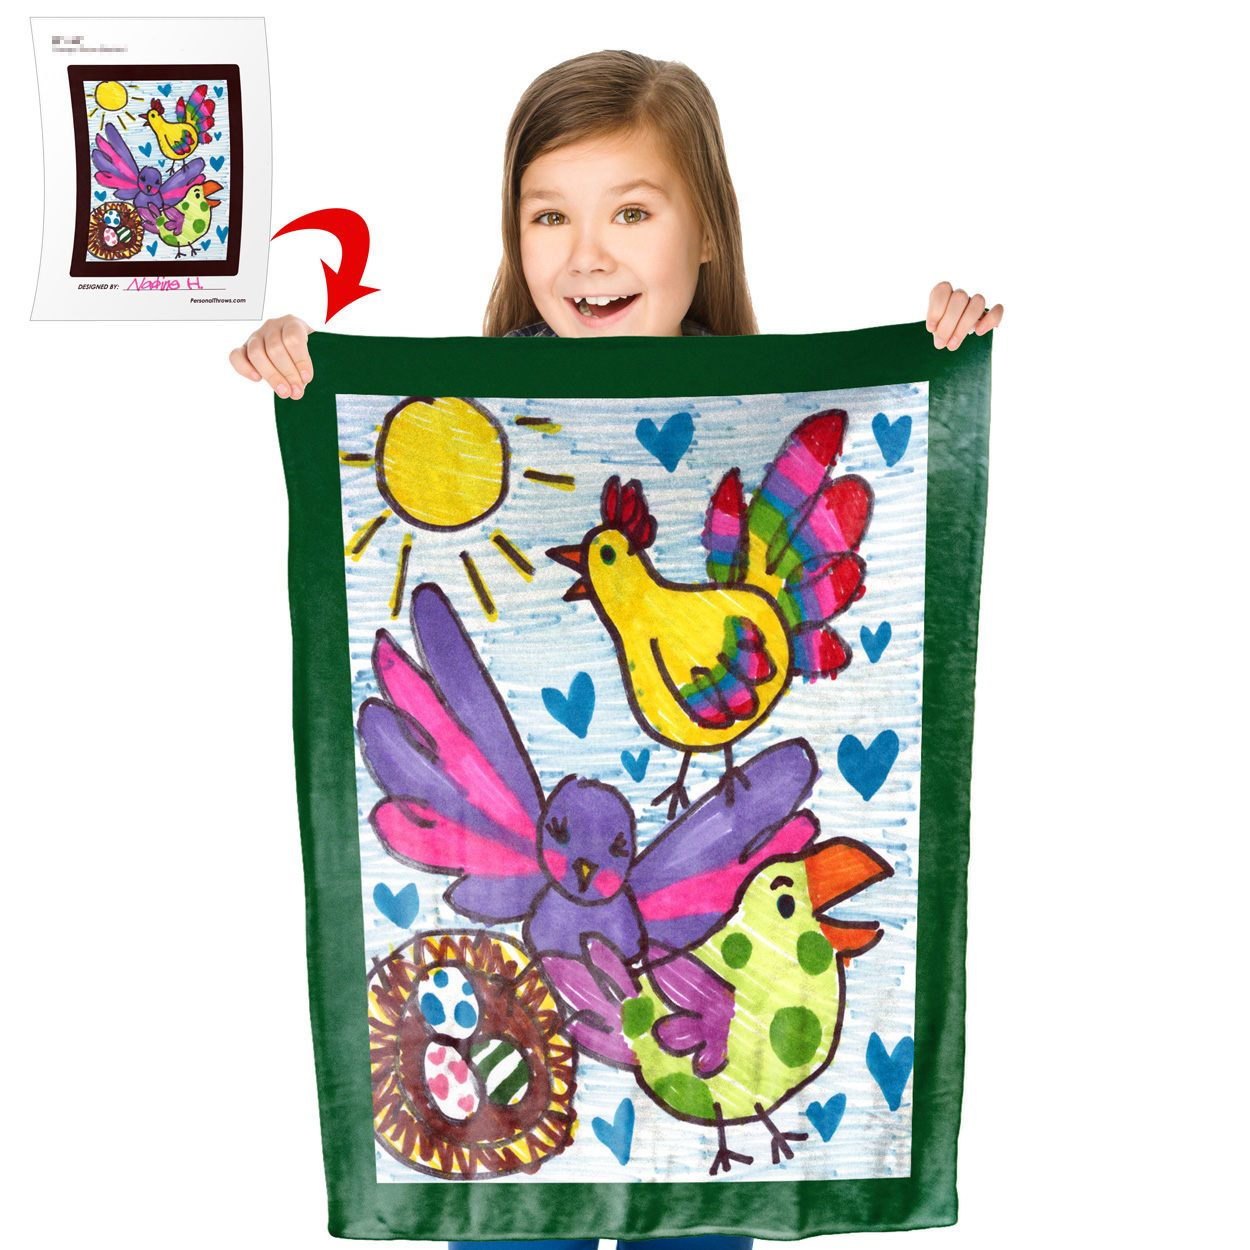 Turn Your Child's Drawing into a 30″ x 40″ Plush Fleece Mini Blanket